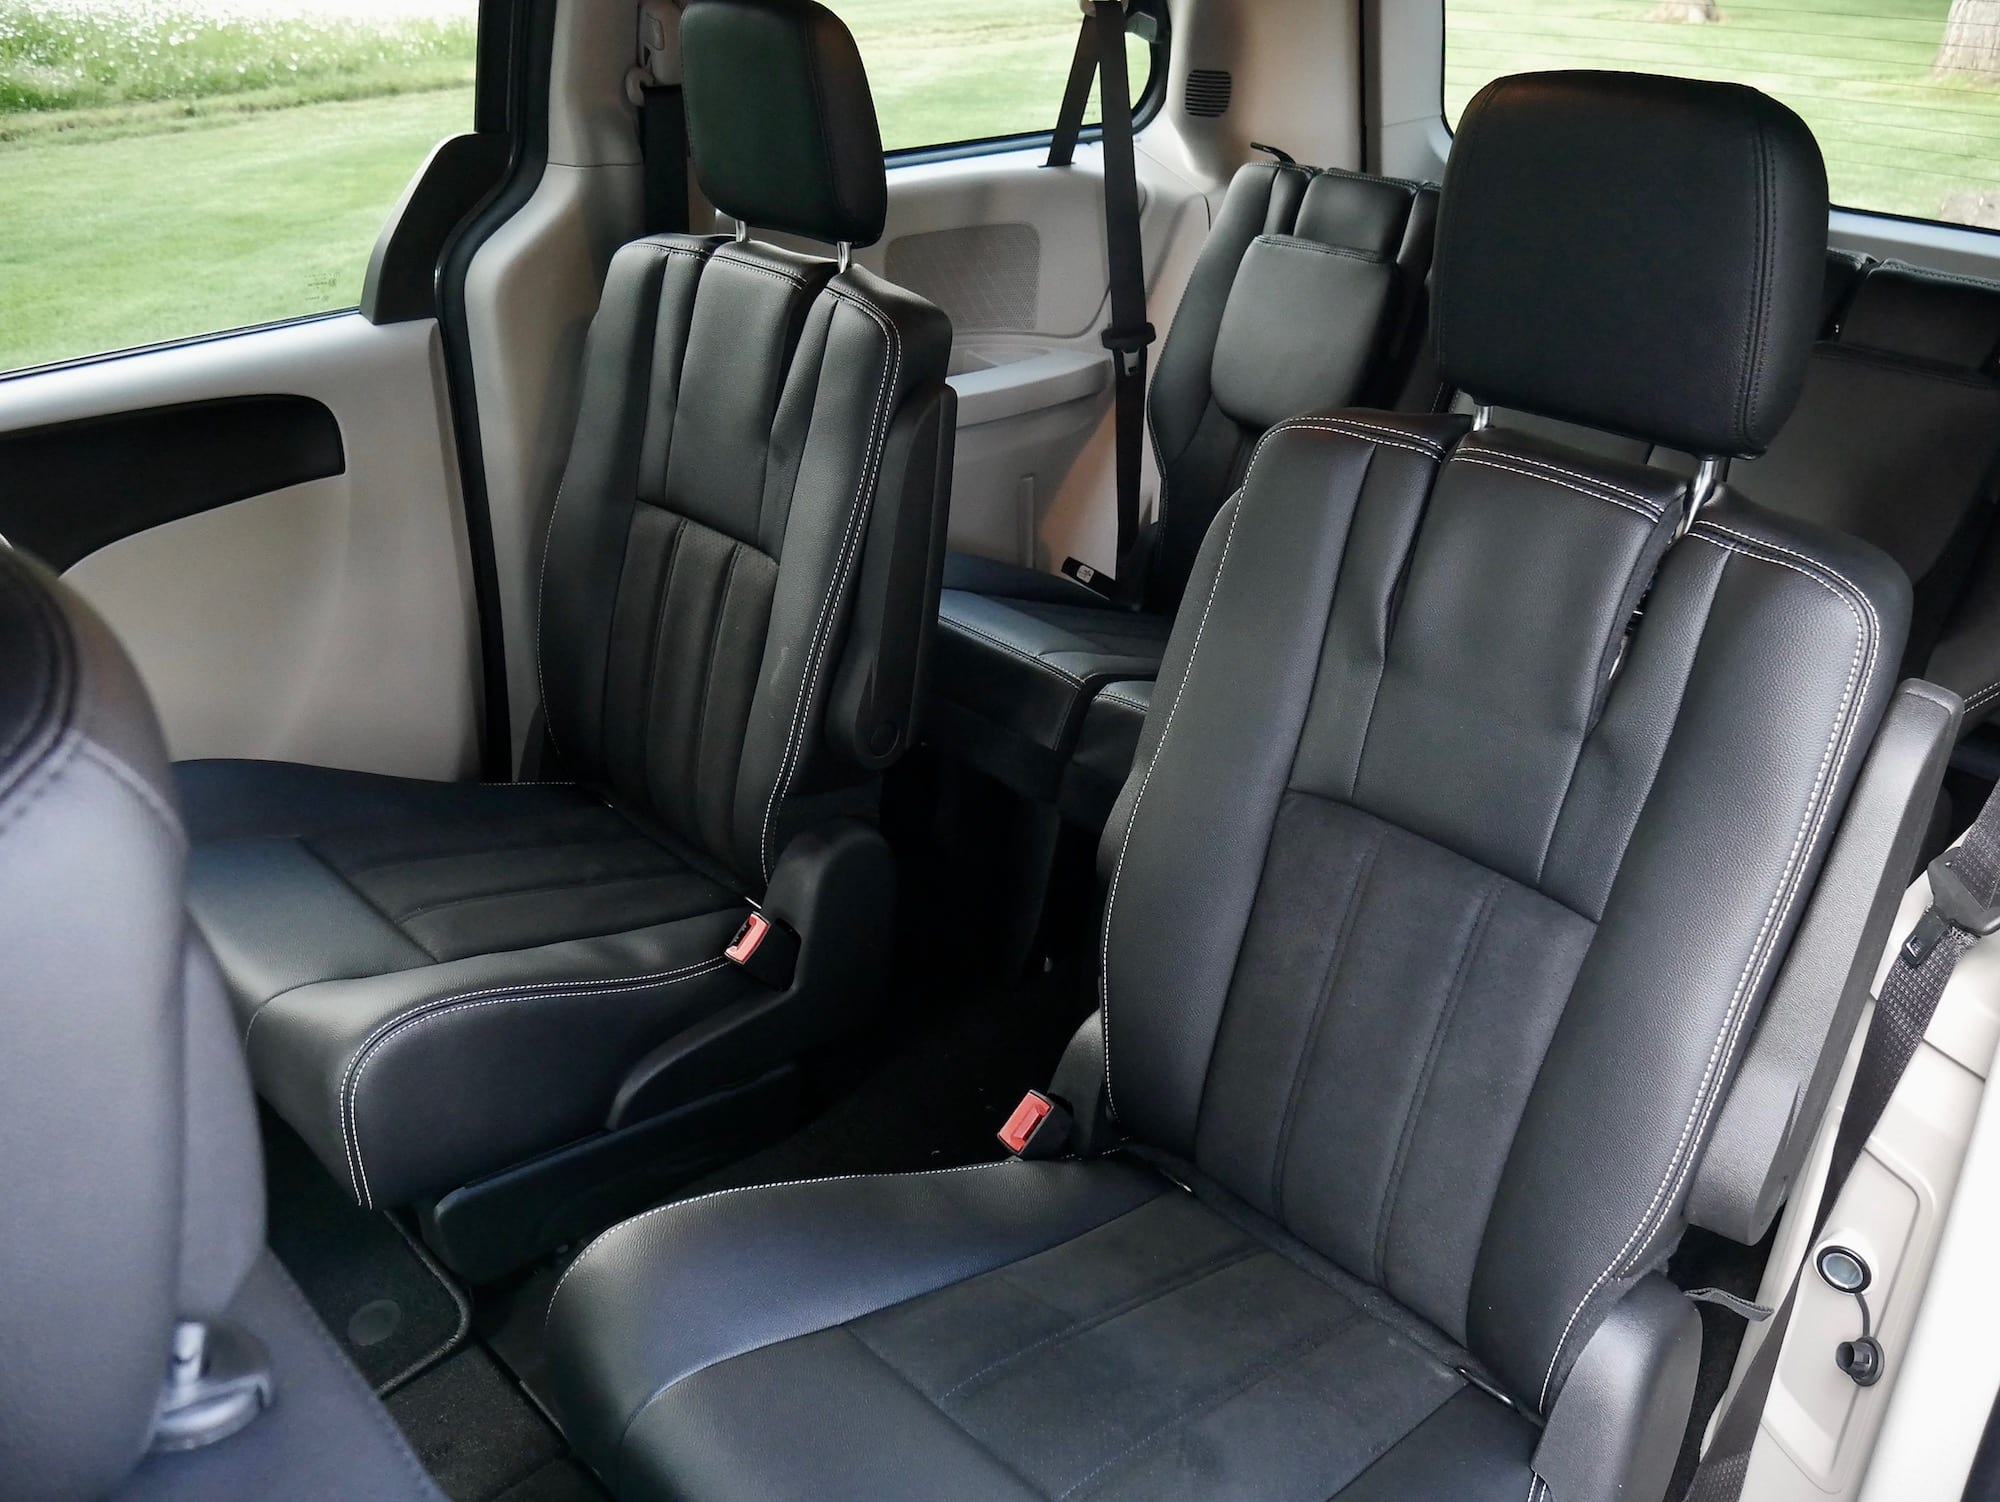 2019 Dodge Grand Caravan second row seats